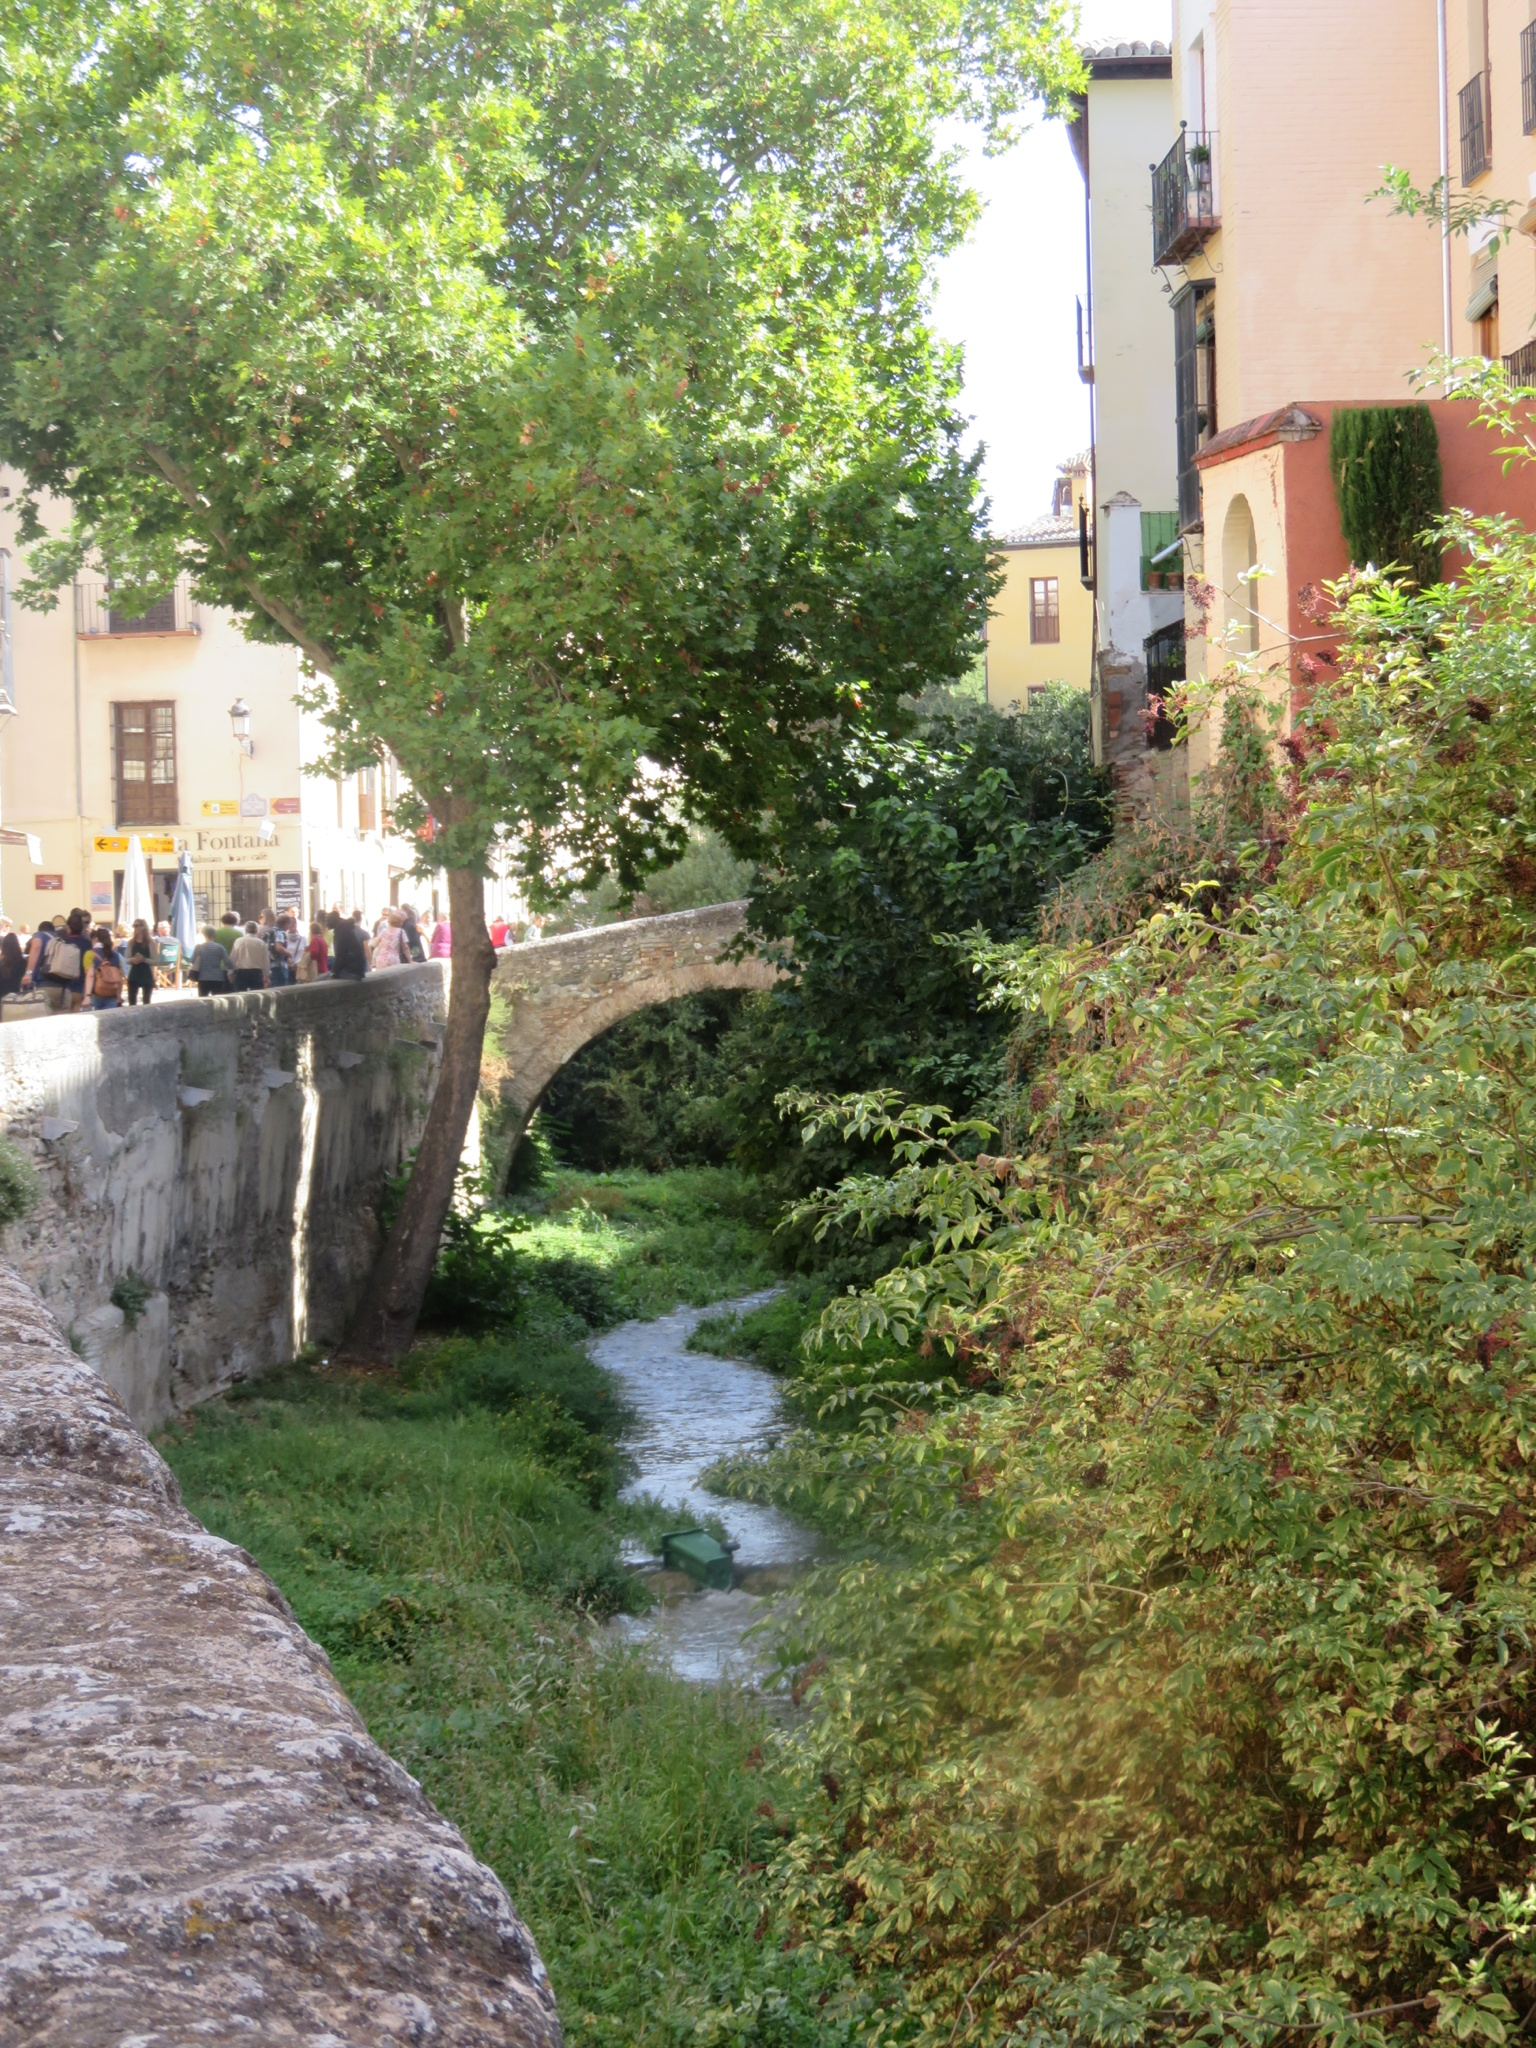 End of summer trickle of the Darro River, runs between the Moorish Quarter and the Alhambra